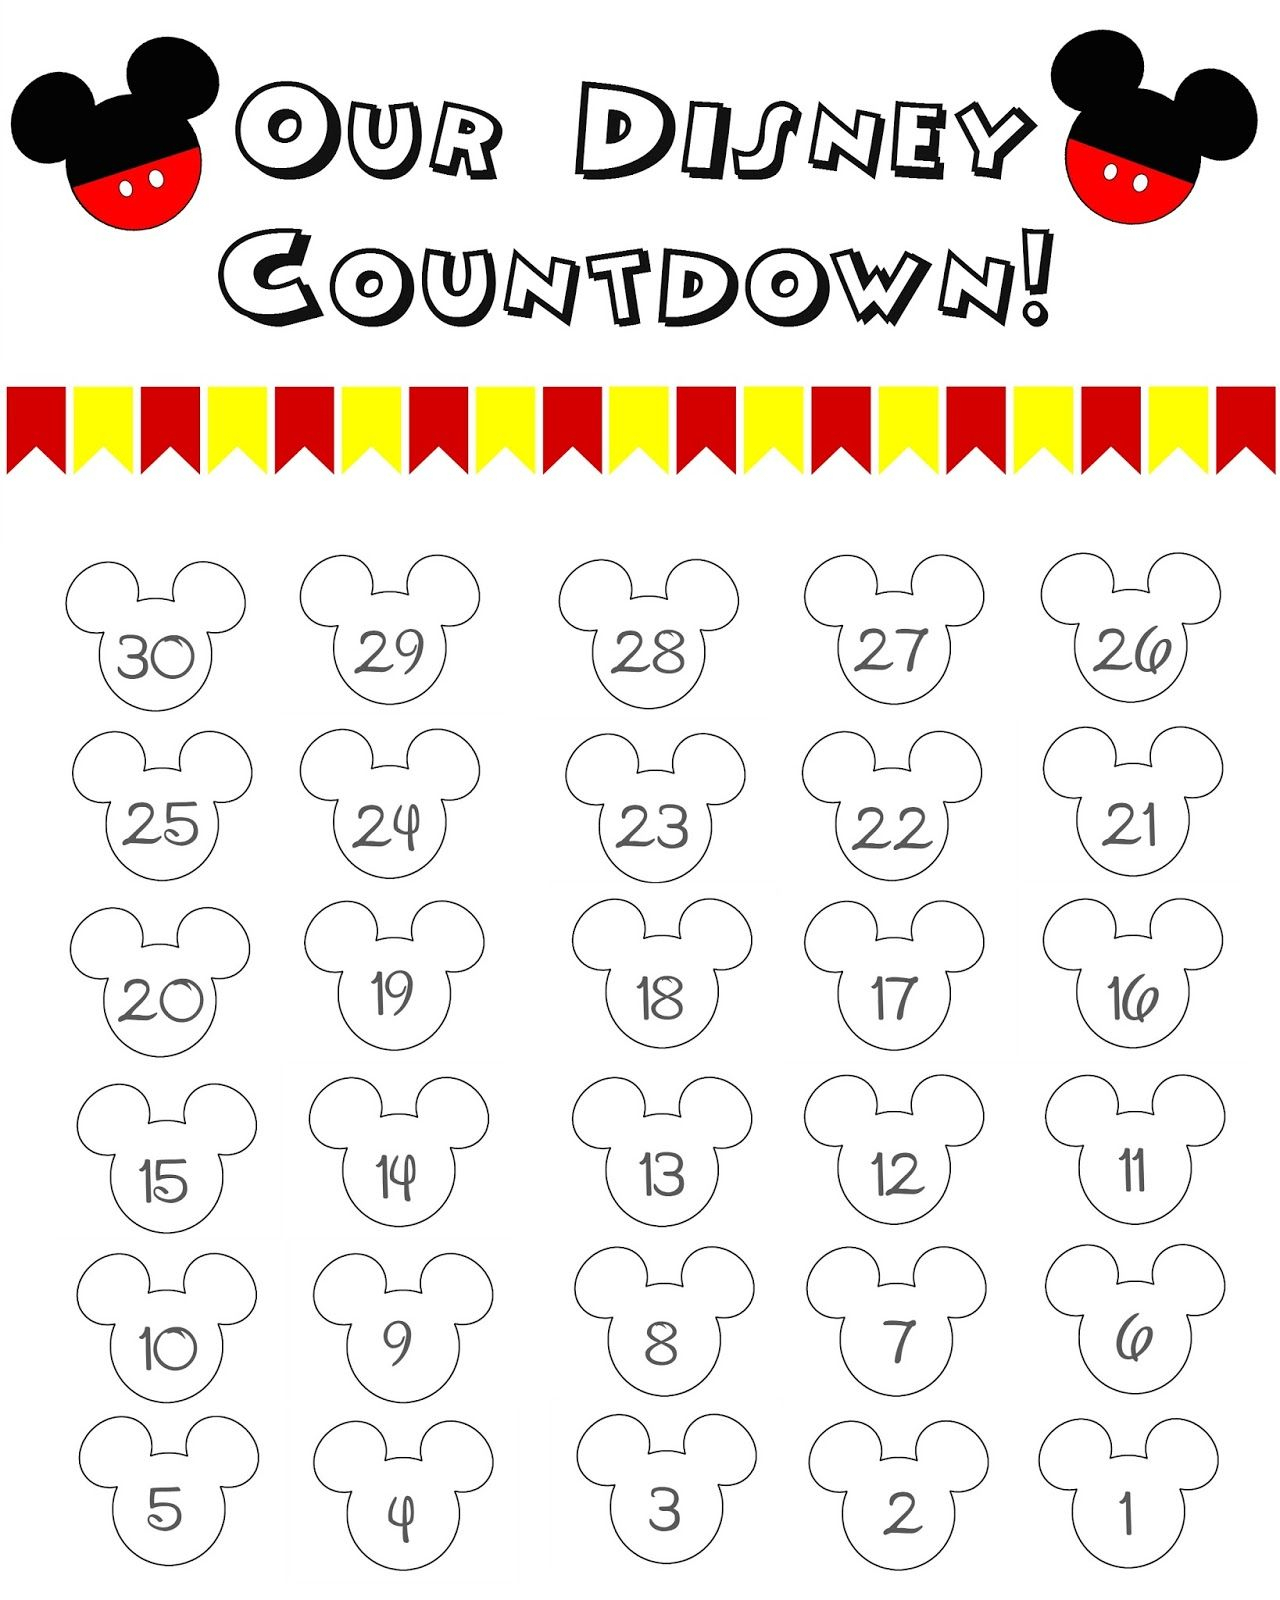 Disney World Countdown Calendar  Free Printable | Disney intended for Disney Countdown Calendar Printable